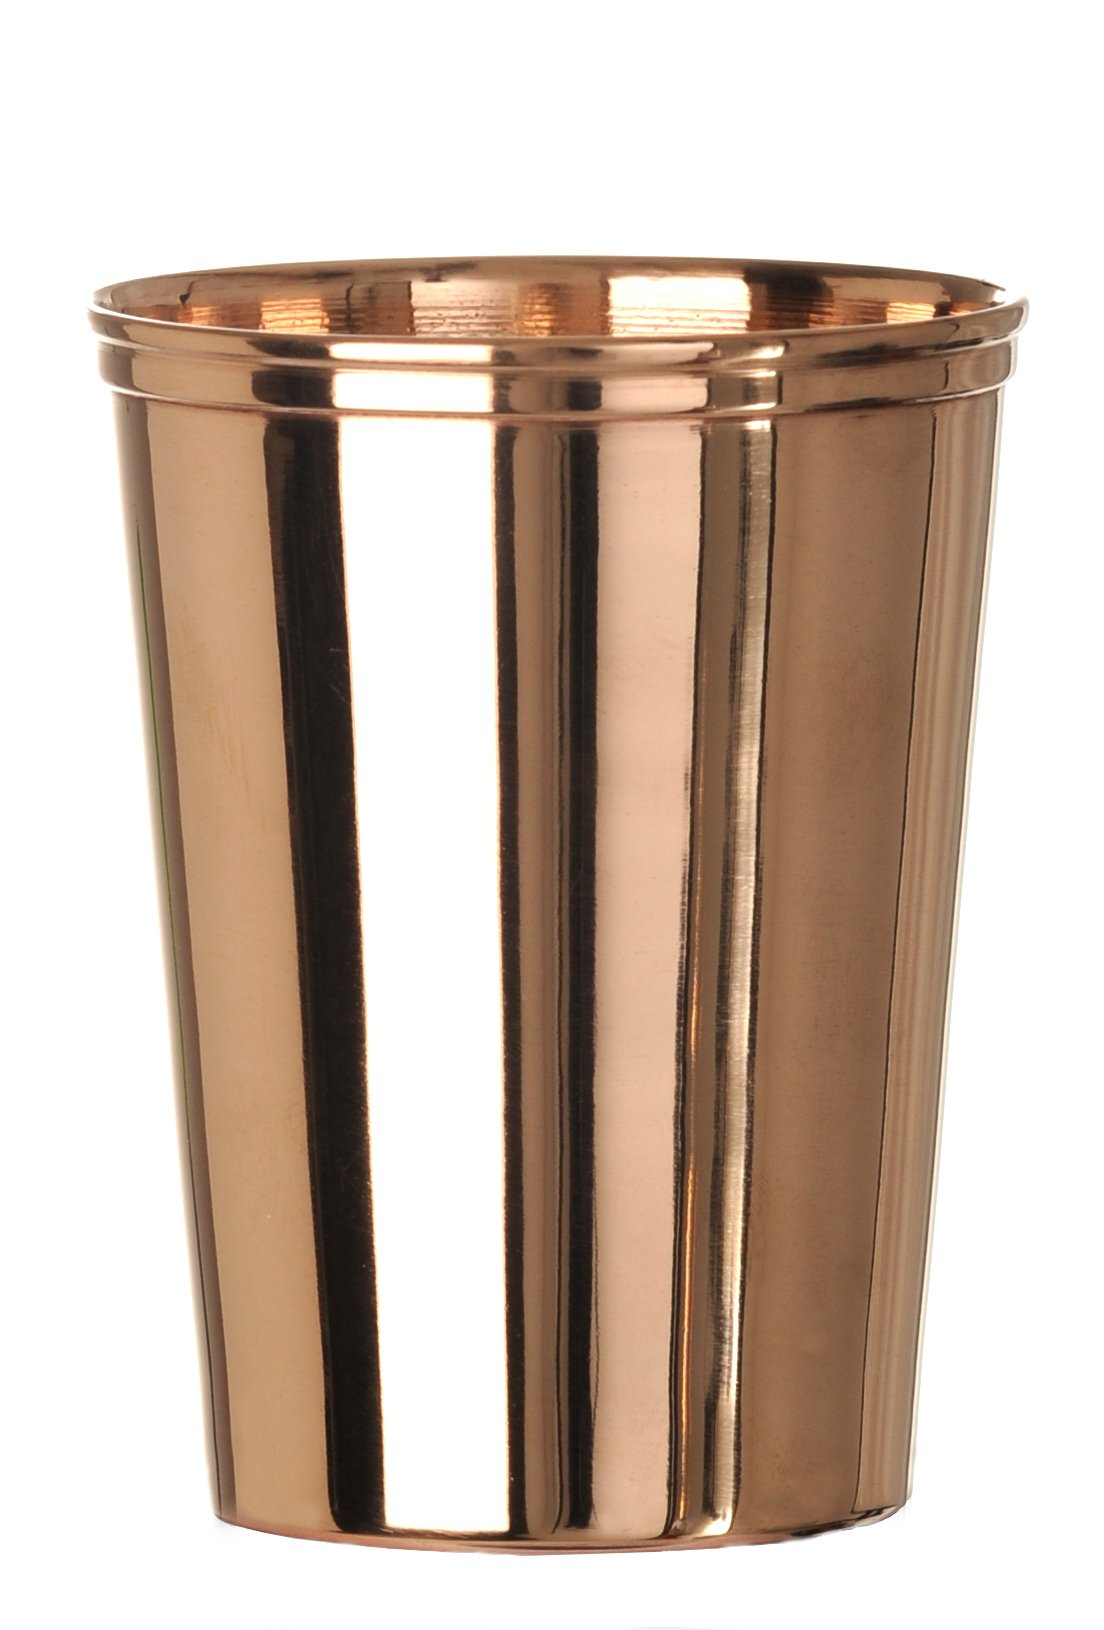 Insideretail Pure Copper Cup 'Tumbler' (Set of 12), 105mm, Gold